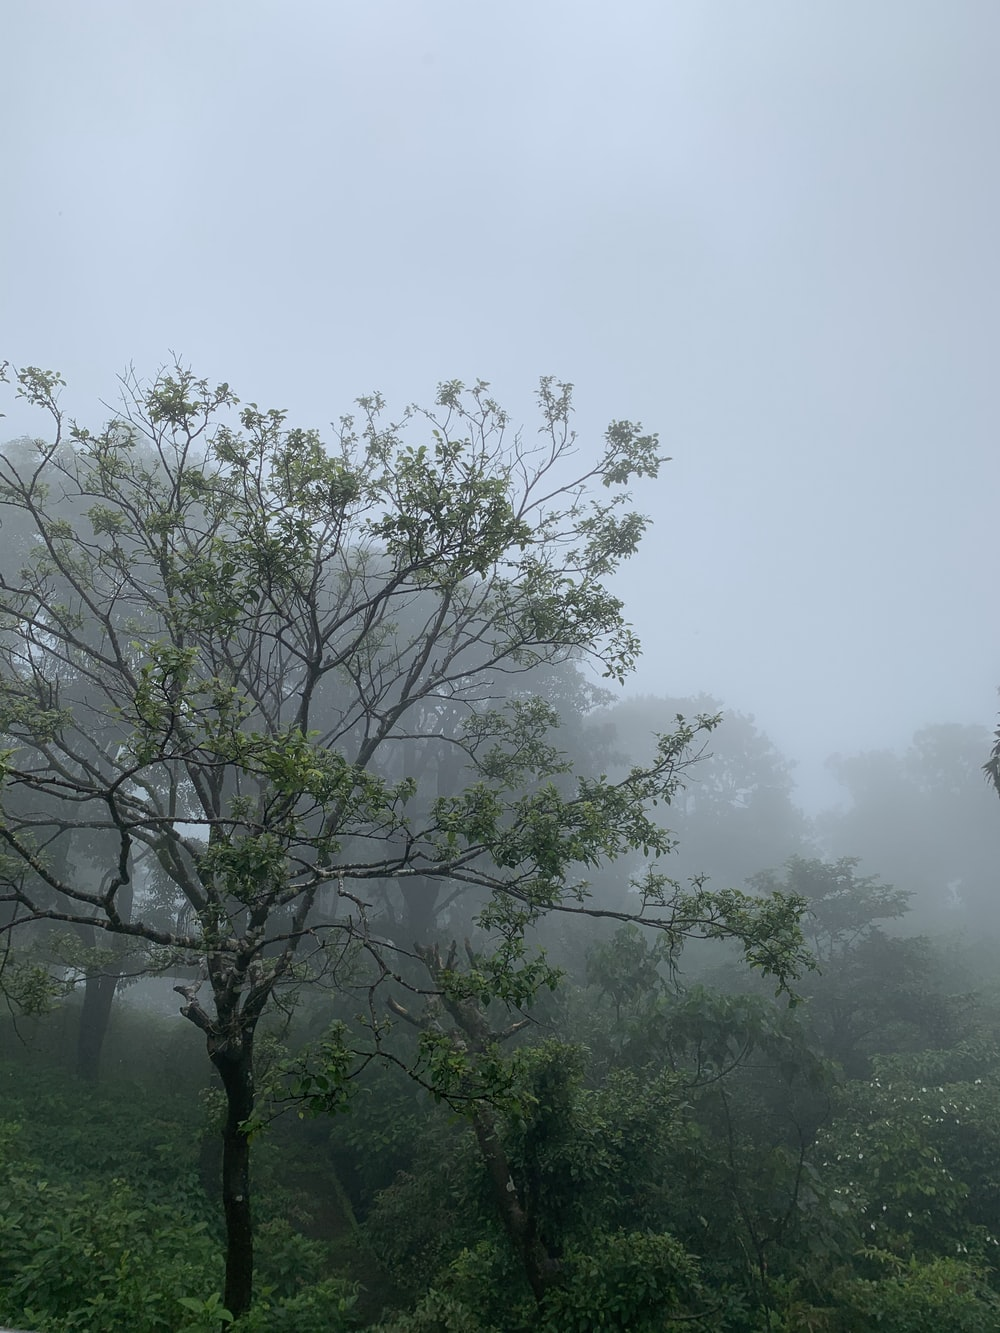 green trees foliage covered with white fog